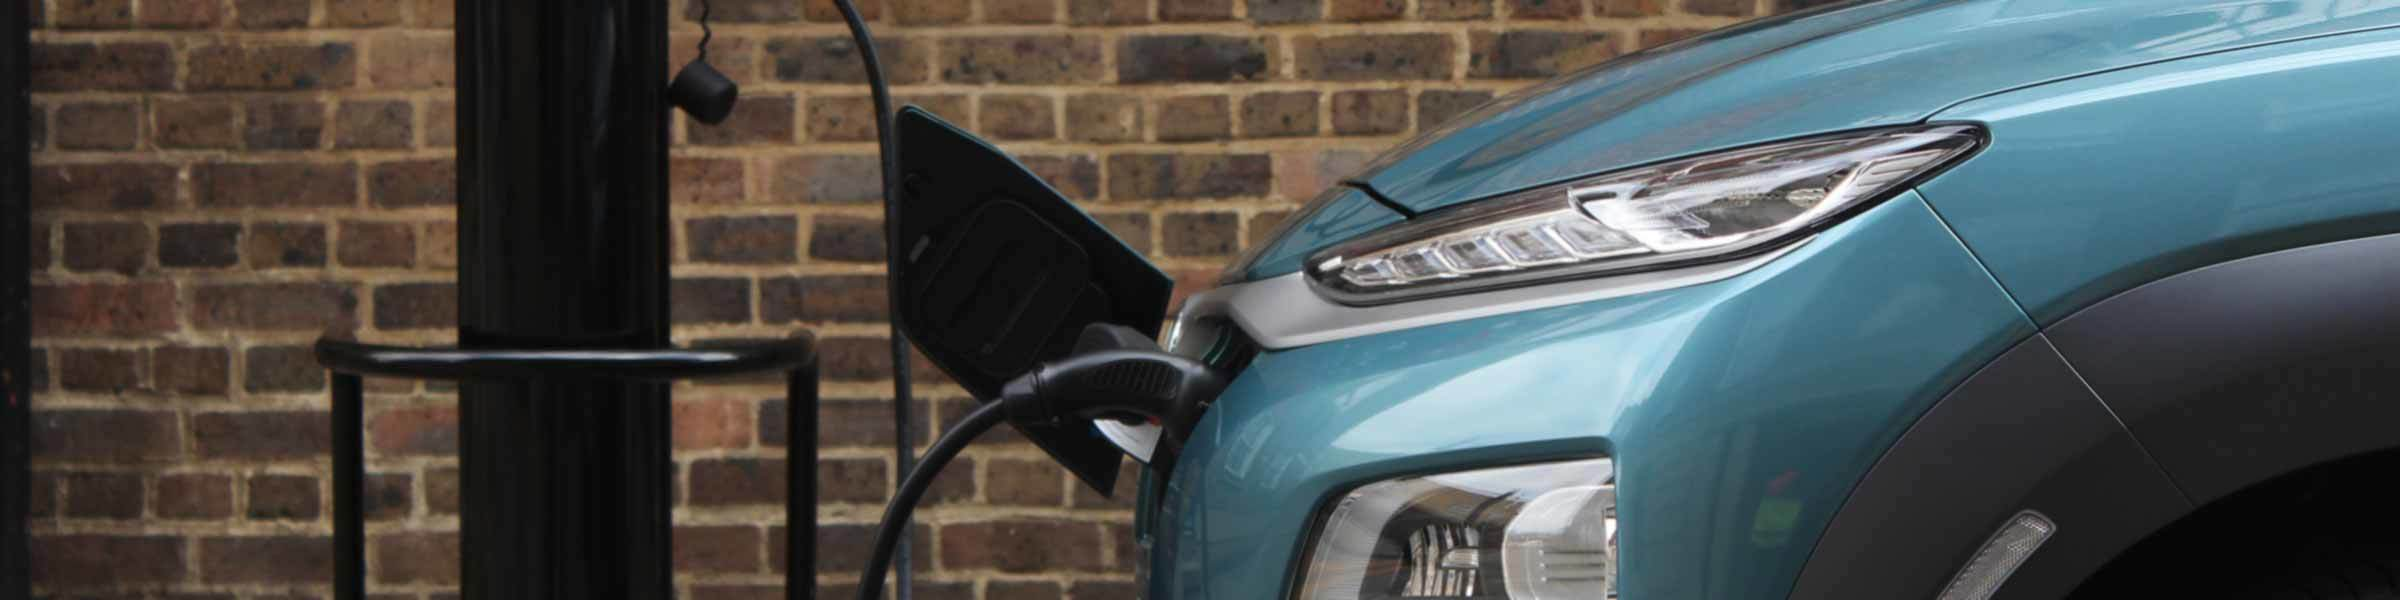 4 tips for driving your EV in the cold